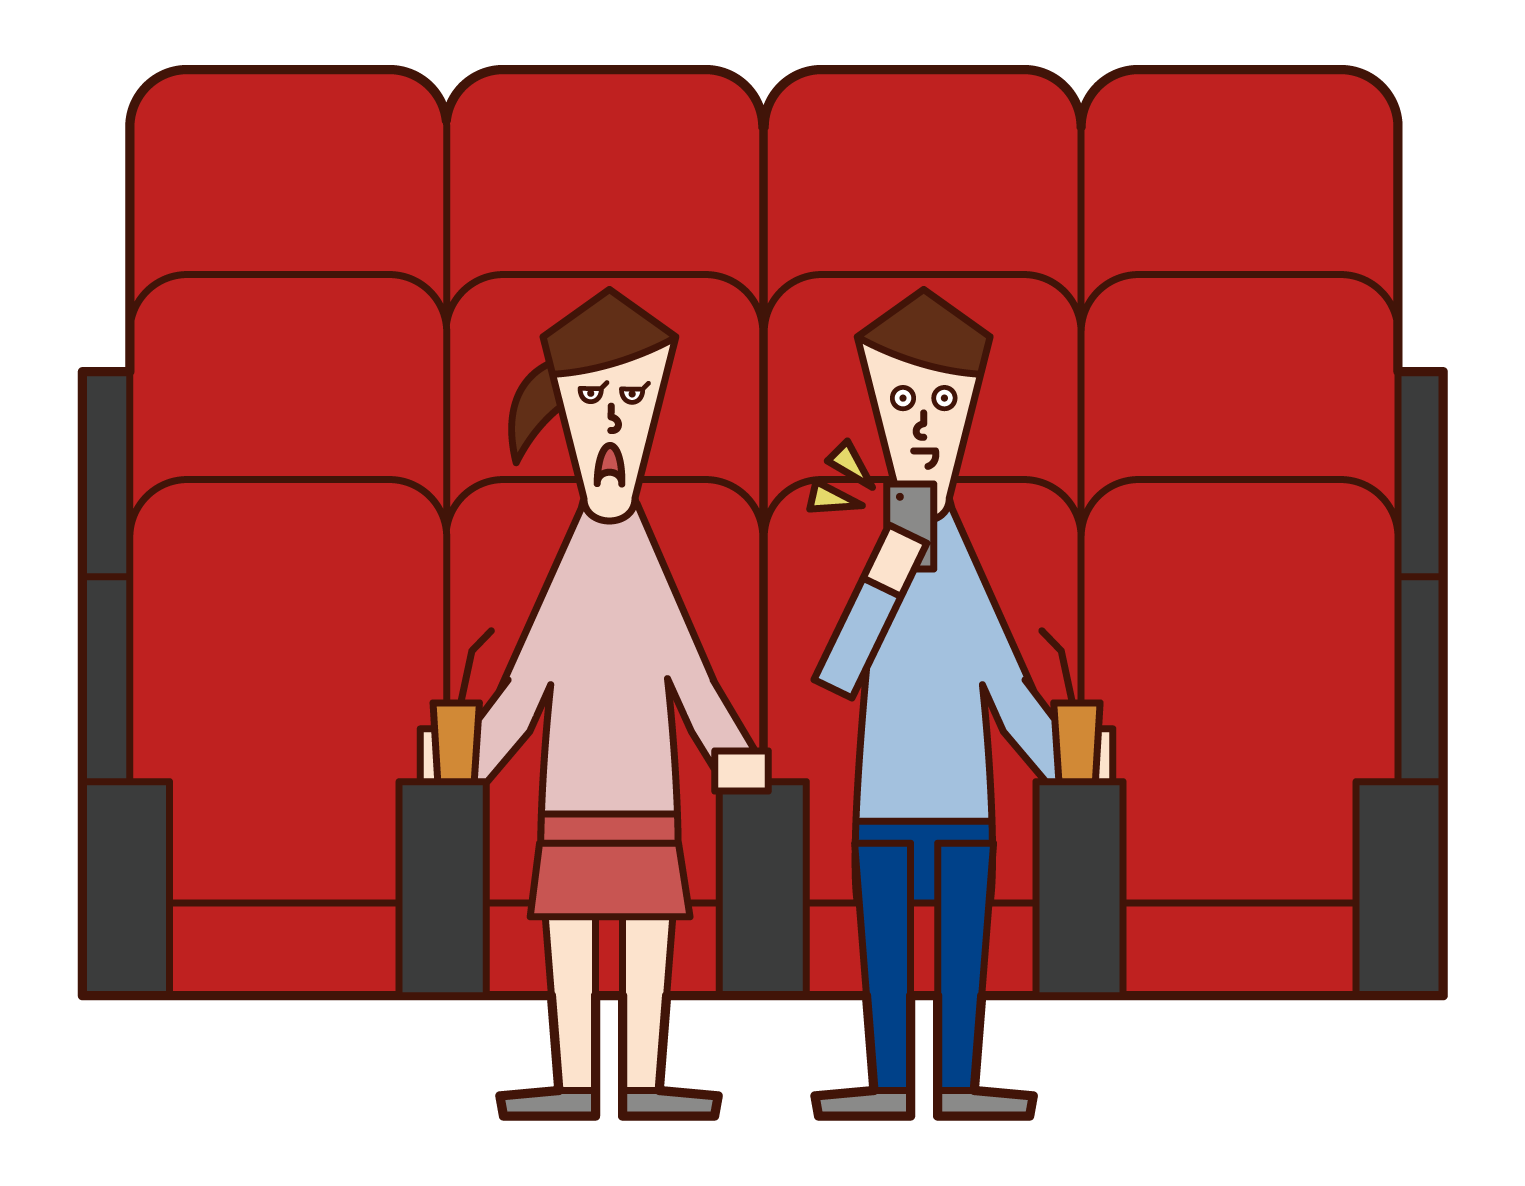 Illustration of a man using a smartphone in a movie theater